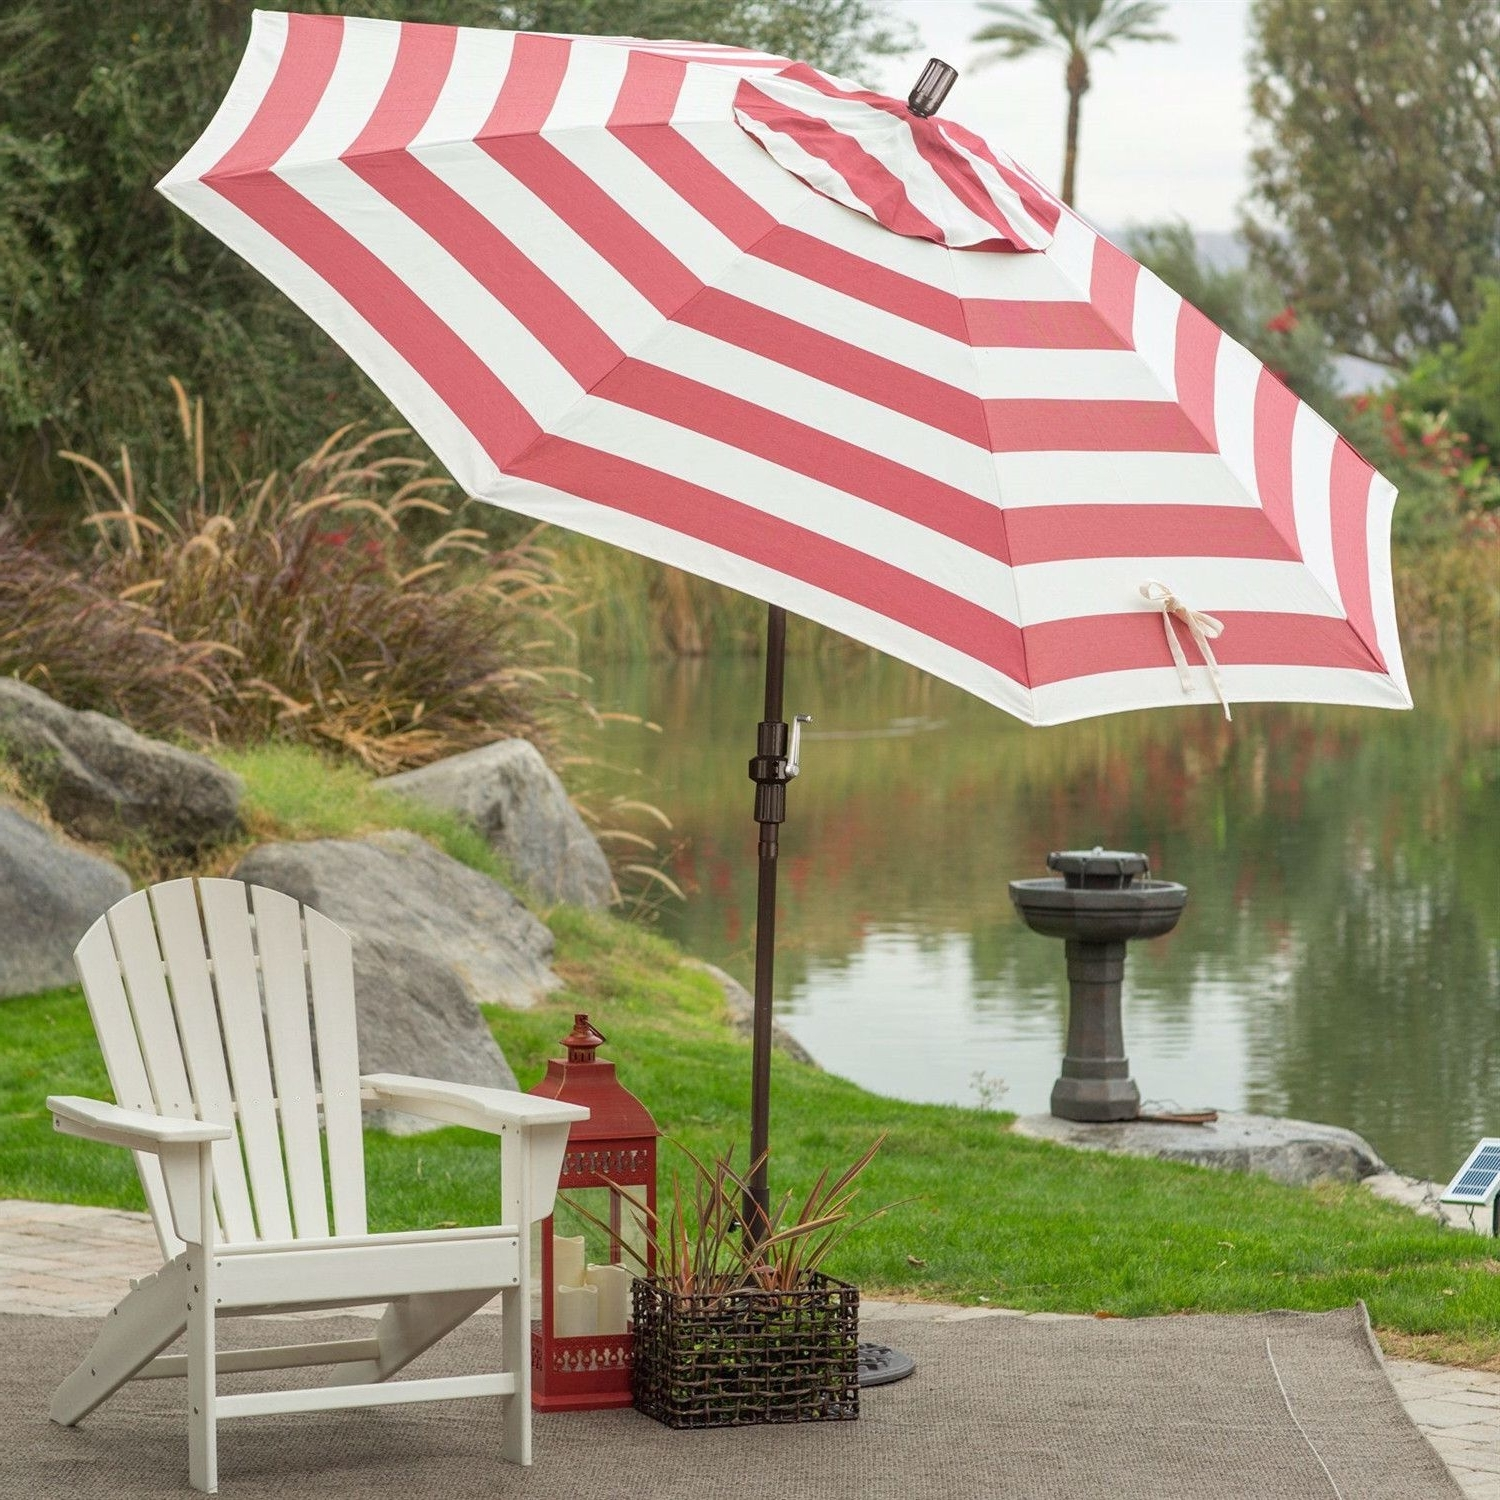 7 5 Ft Patio Umbrella In Red And White Stripe Outdoor Fabric For Widely Used